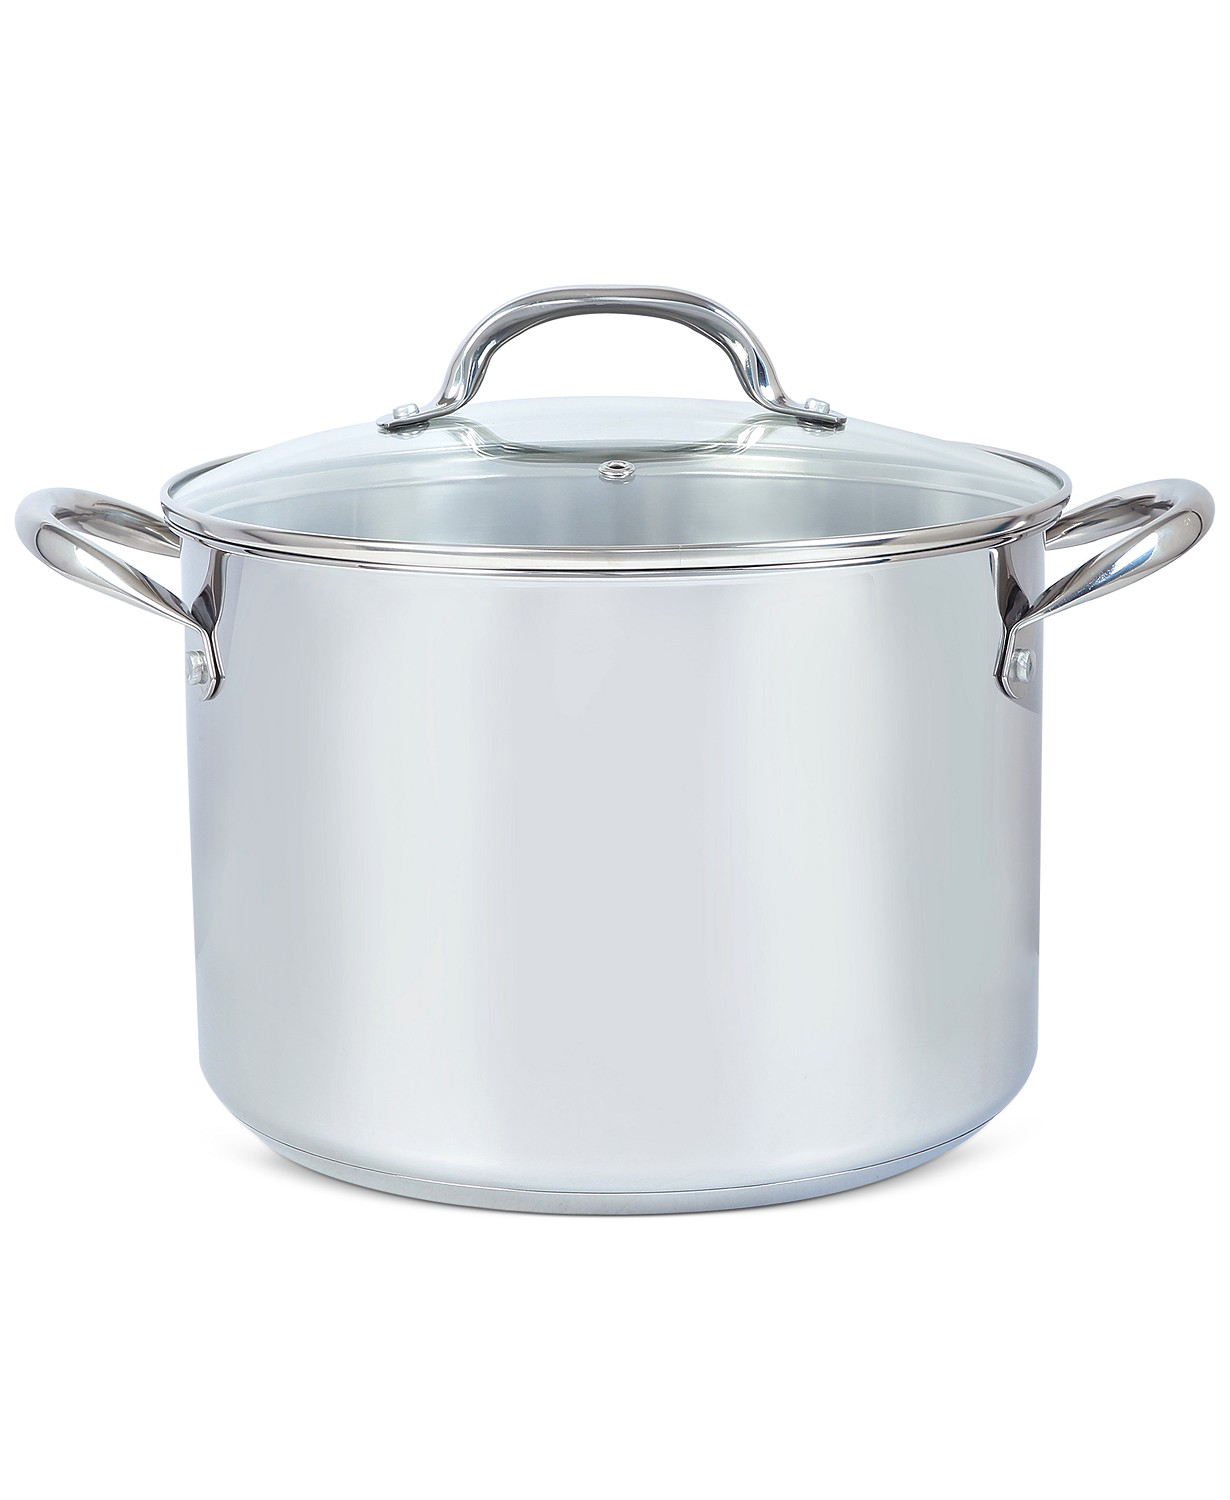 Tools of the Trade 10-Qt. Stainless Steel Stock Pot with Lid